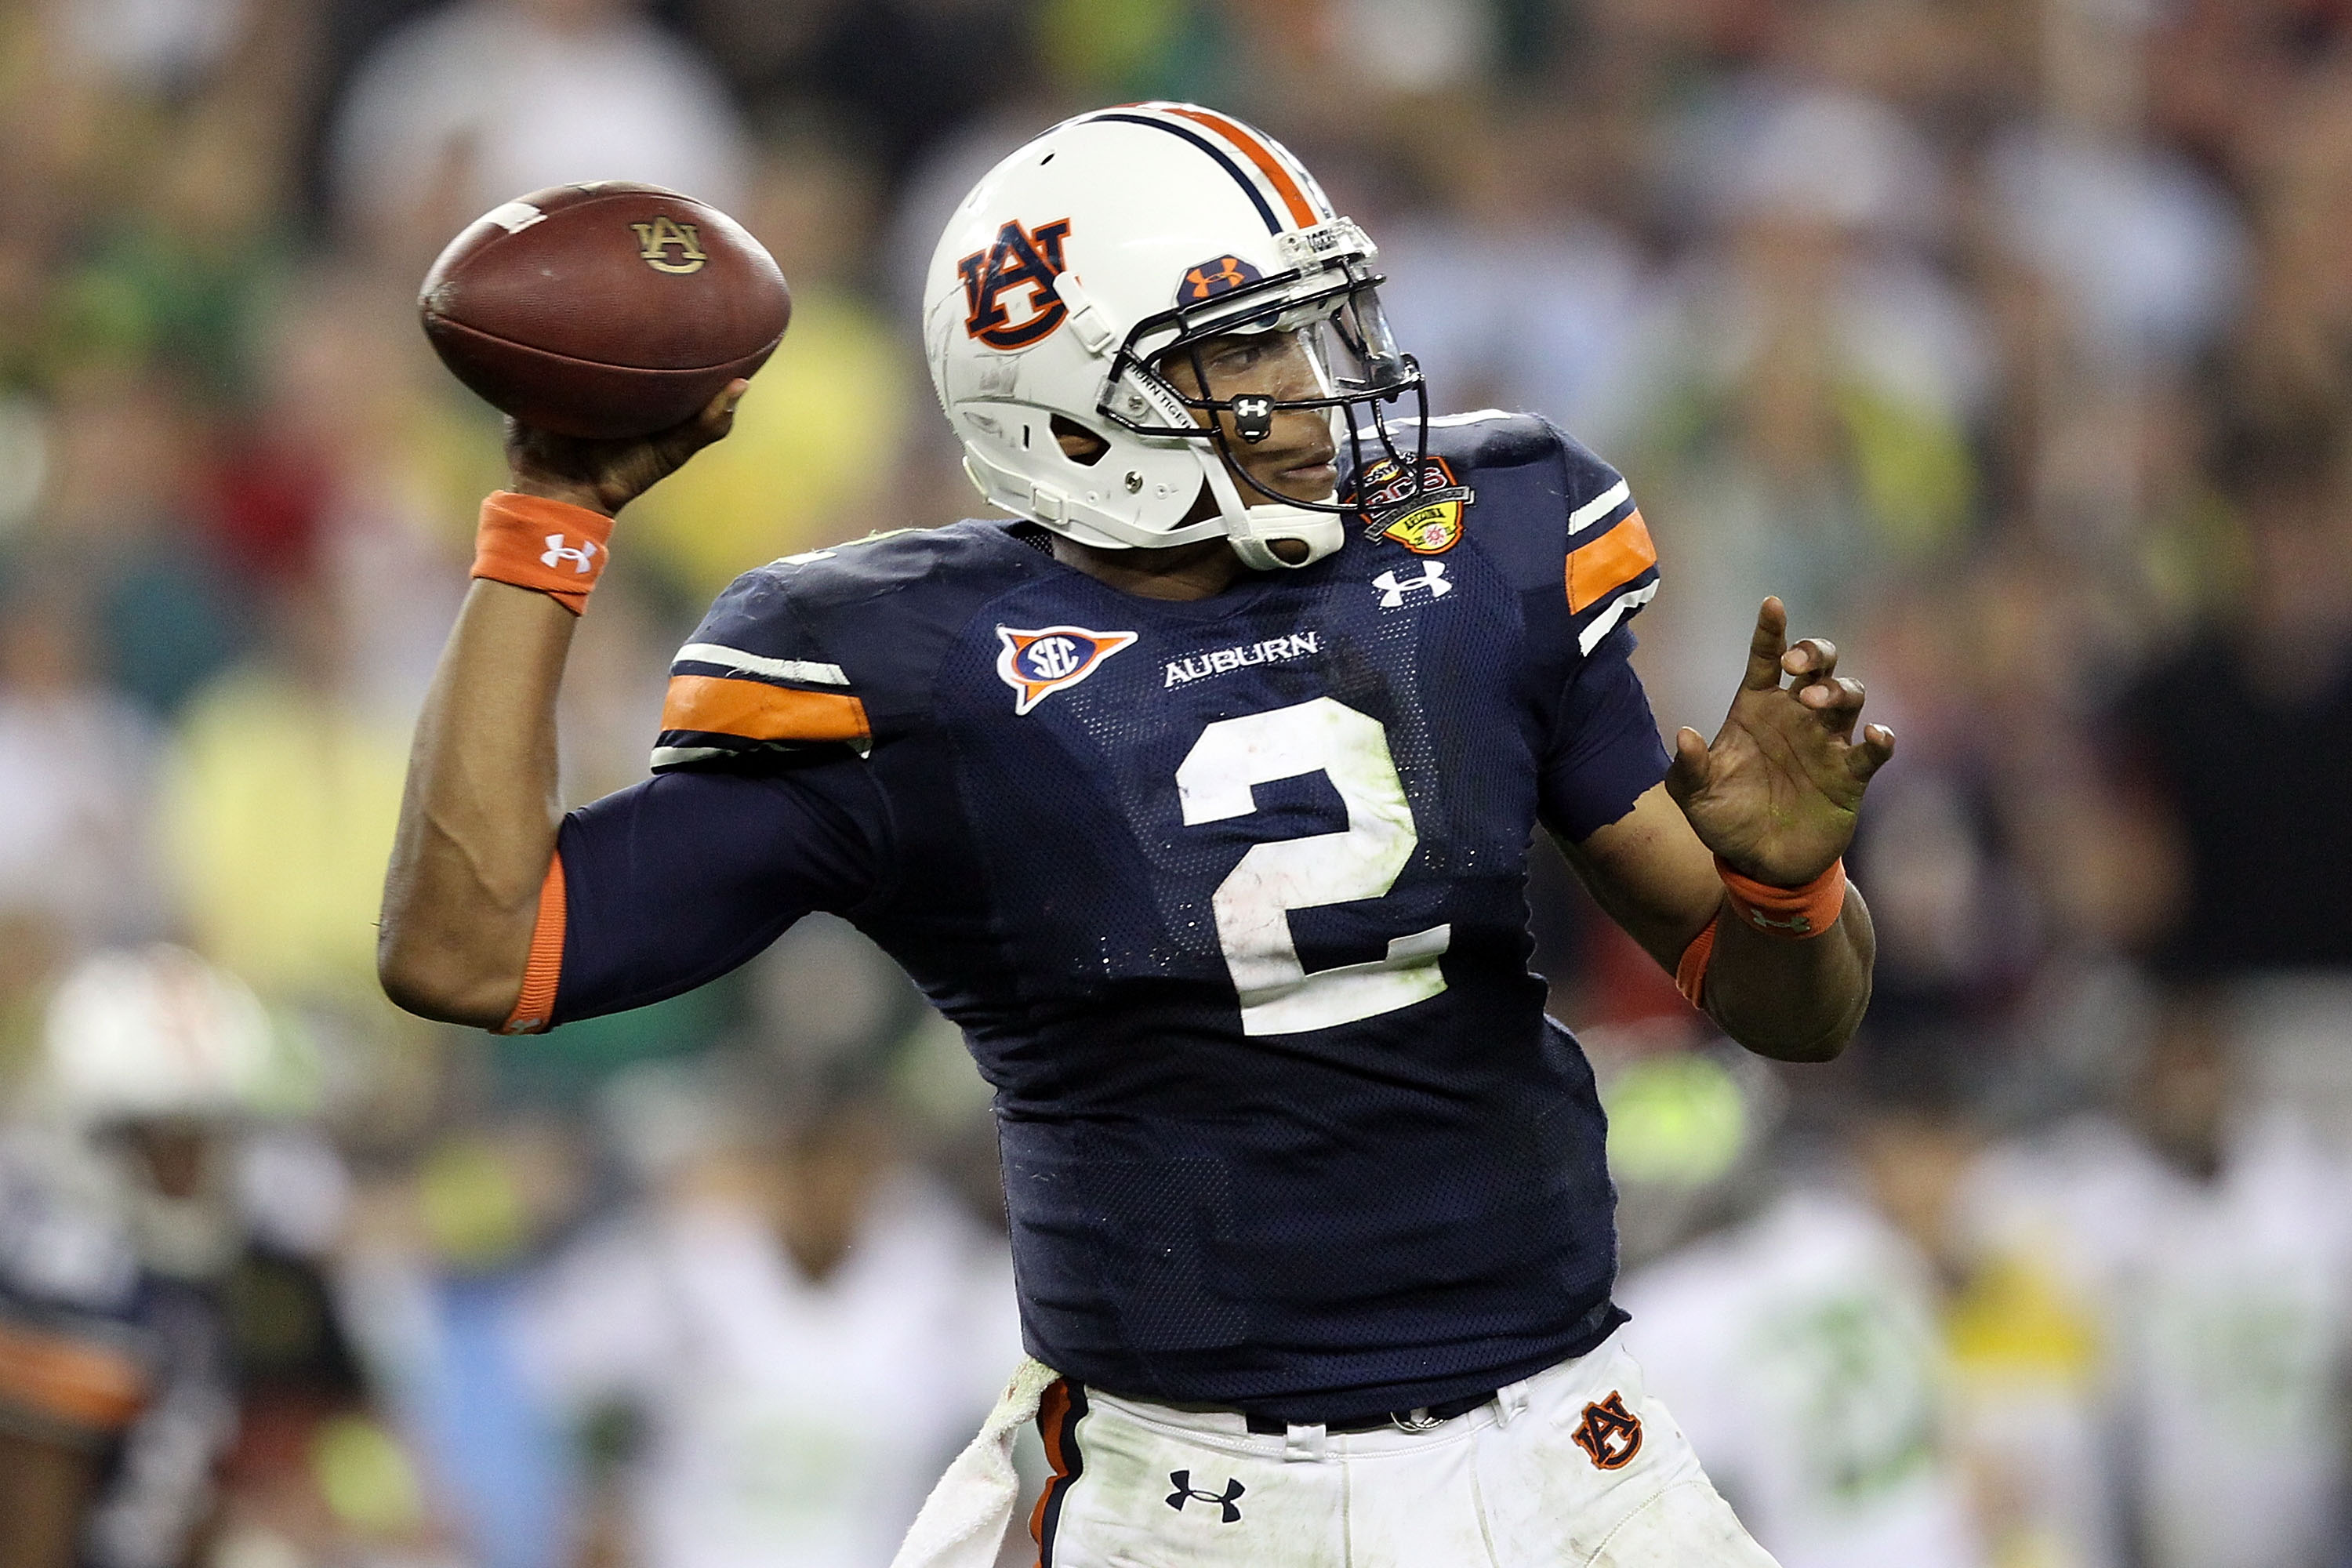 GLENDALE, AZ - JANUARY 10:  Quarterback Cameron Newton #2 of the Auburn Tigers throws the ball in the third quarter against the Oregon Ducks during the Tostitos BCS National Championship Game at University of Phoenix Stadium on January 10, 2011 in Glendal